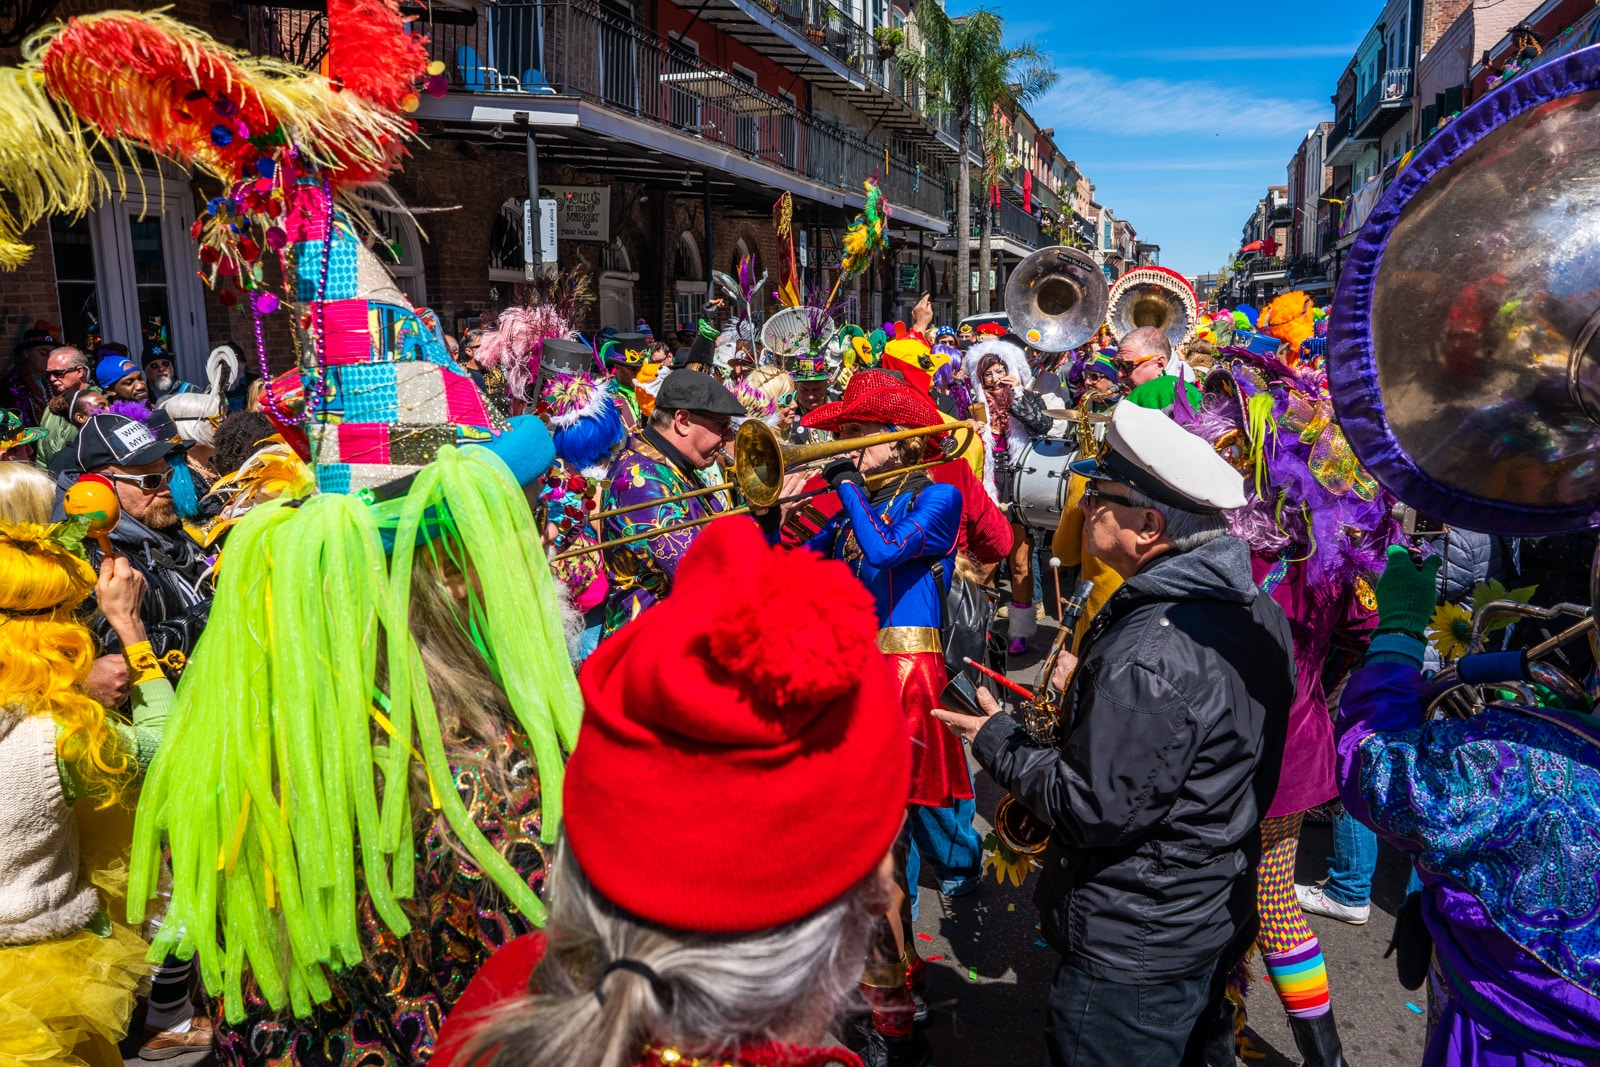 Crowd of people in costume celebrating Mardi Gras in New Orleans